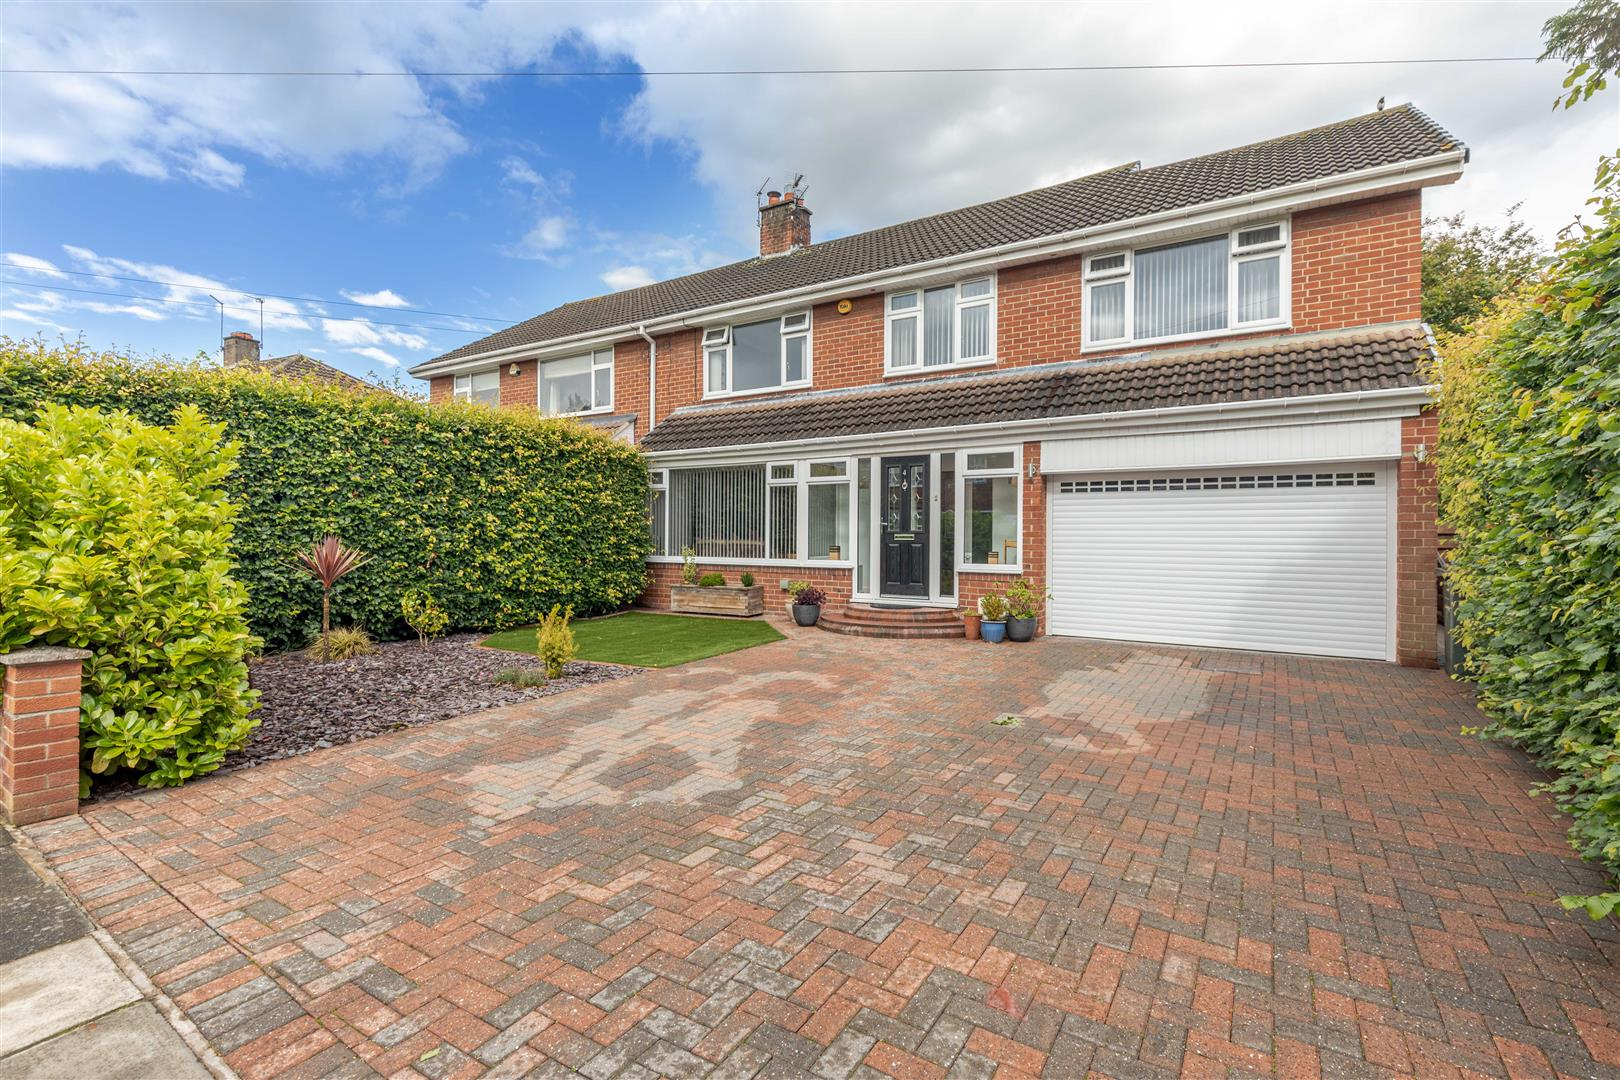 4 bed semi-detached house for sale in Newcastle Upon Tyne, NE3 5TB, NE3